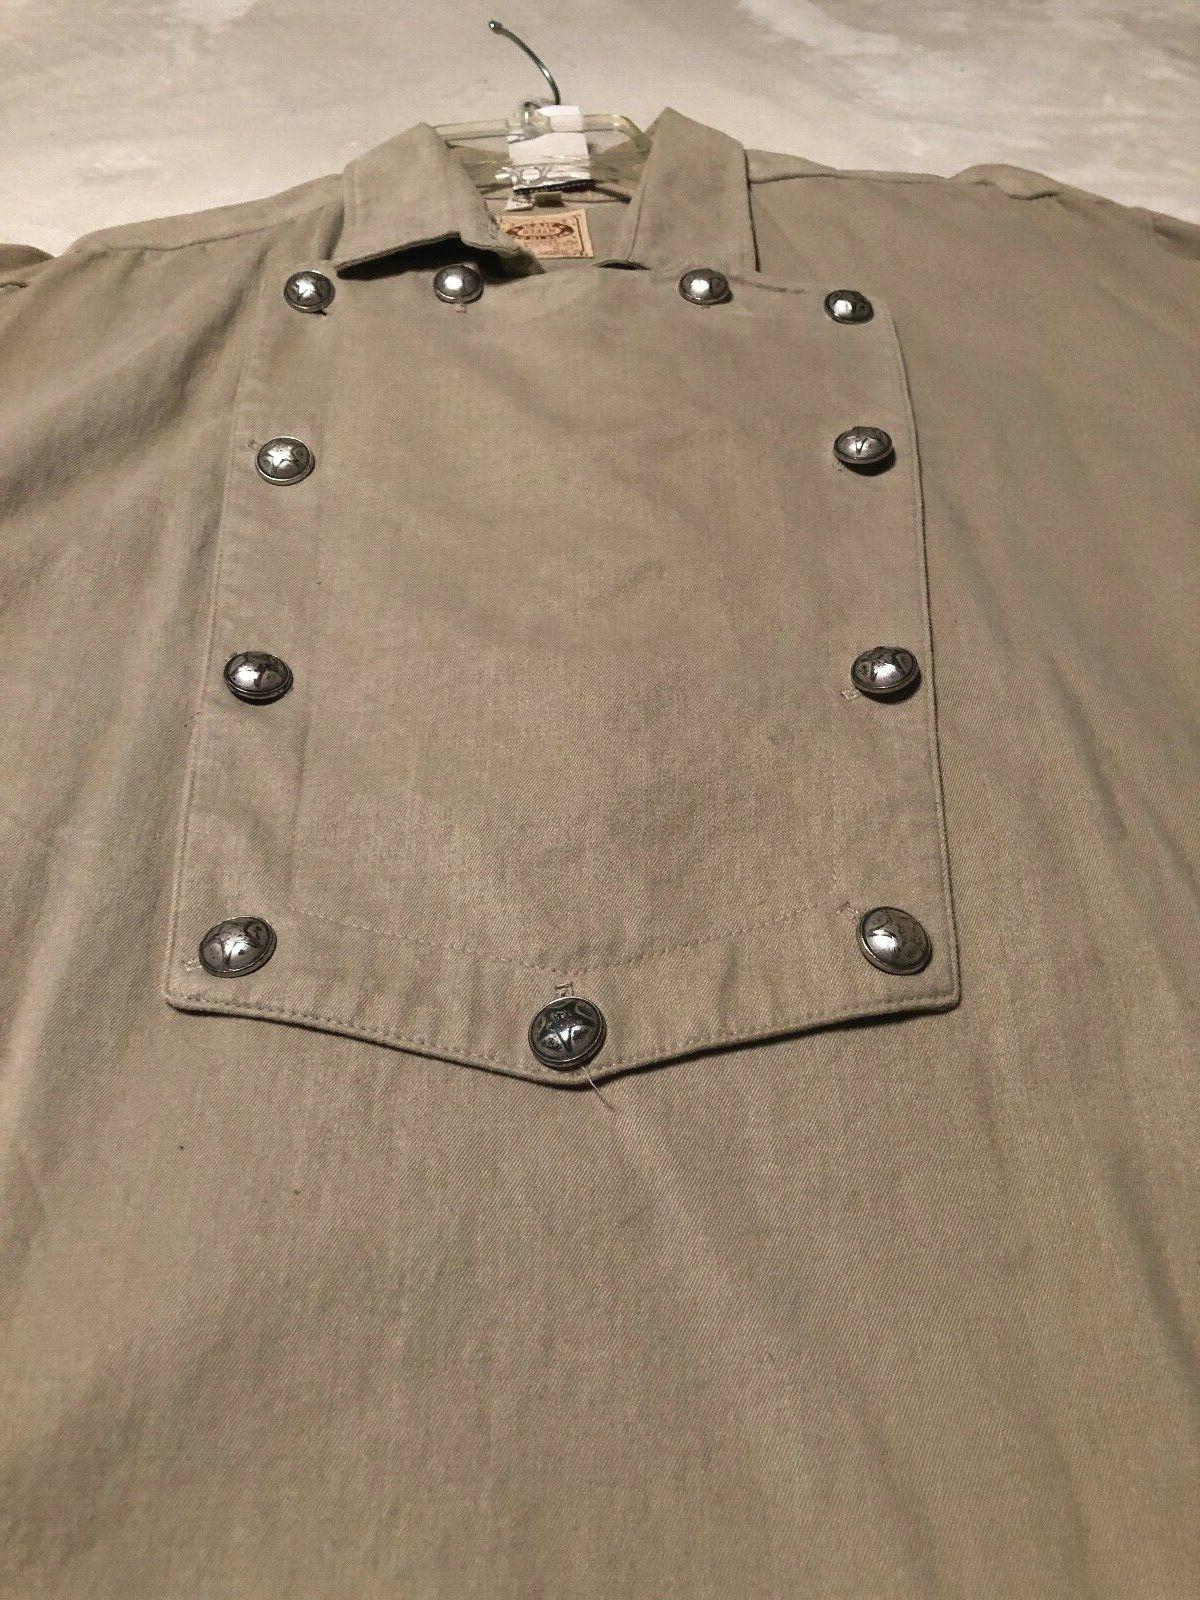 NWT Frontier Clothing Shirt Large Authentic